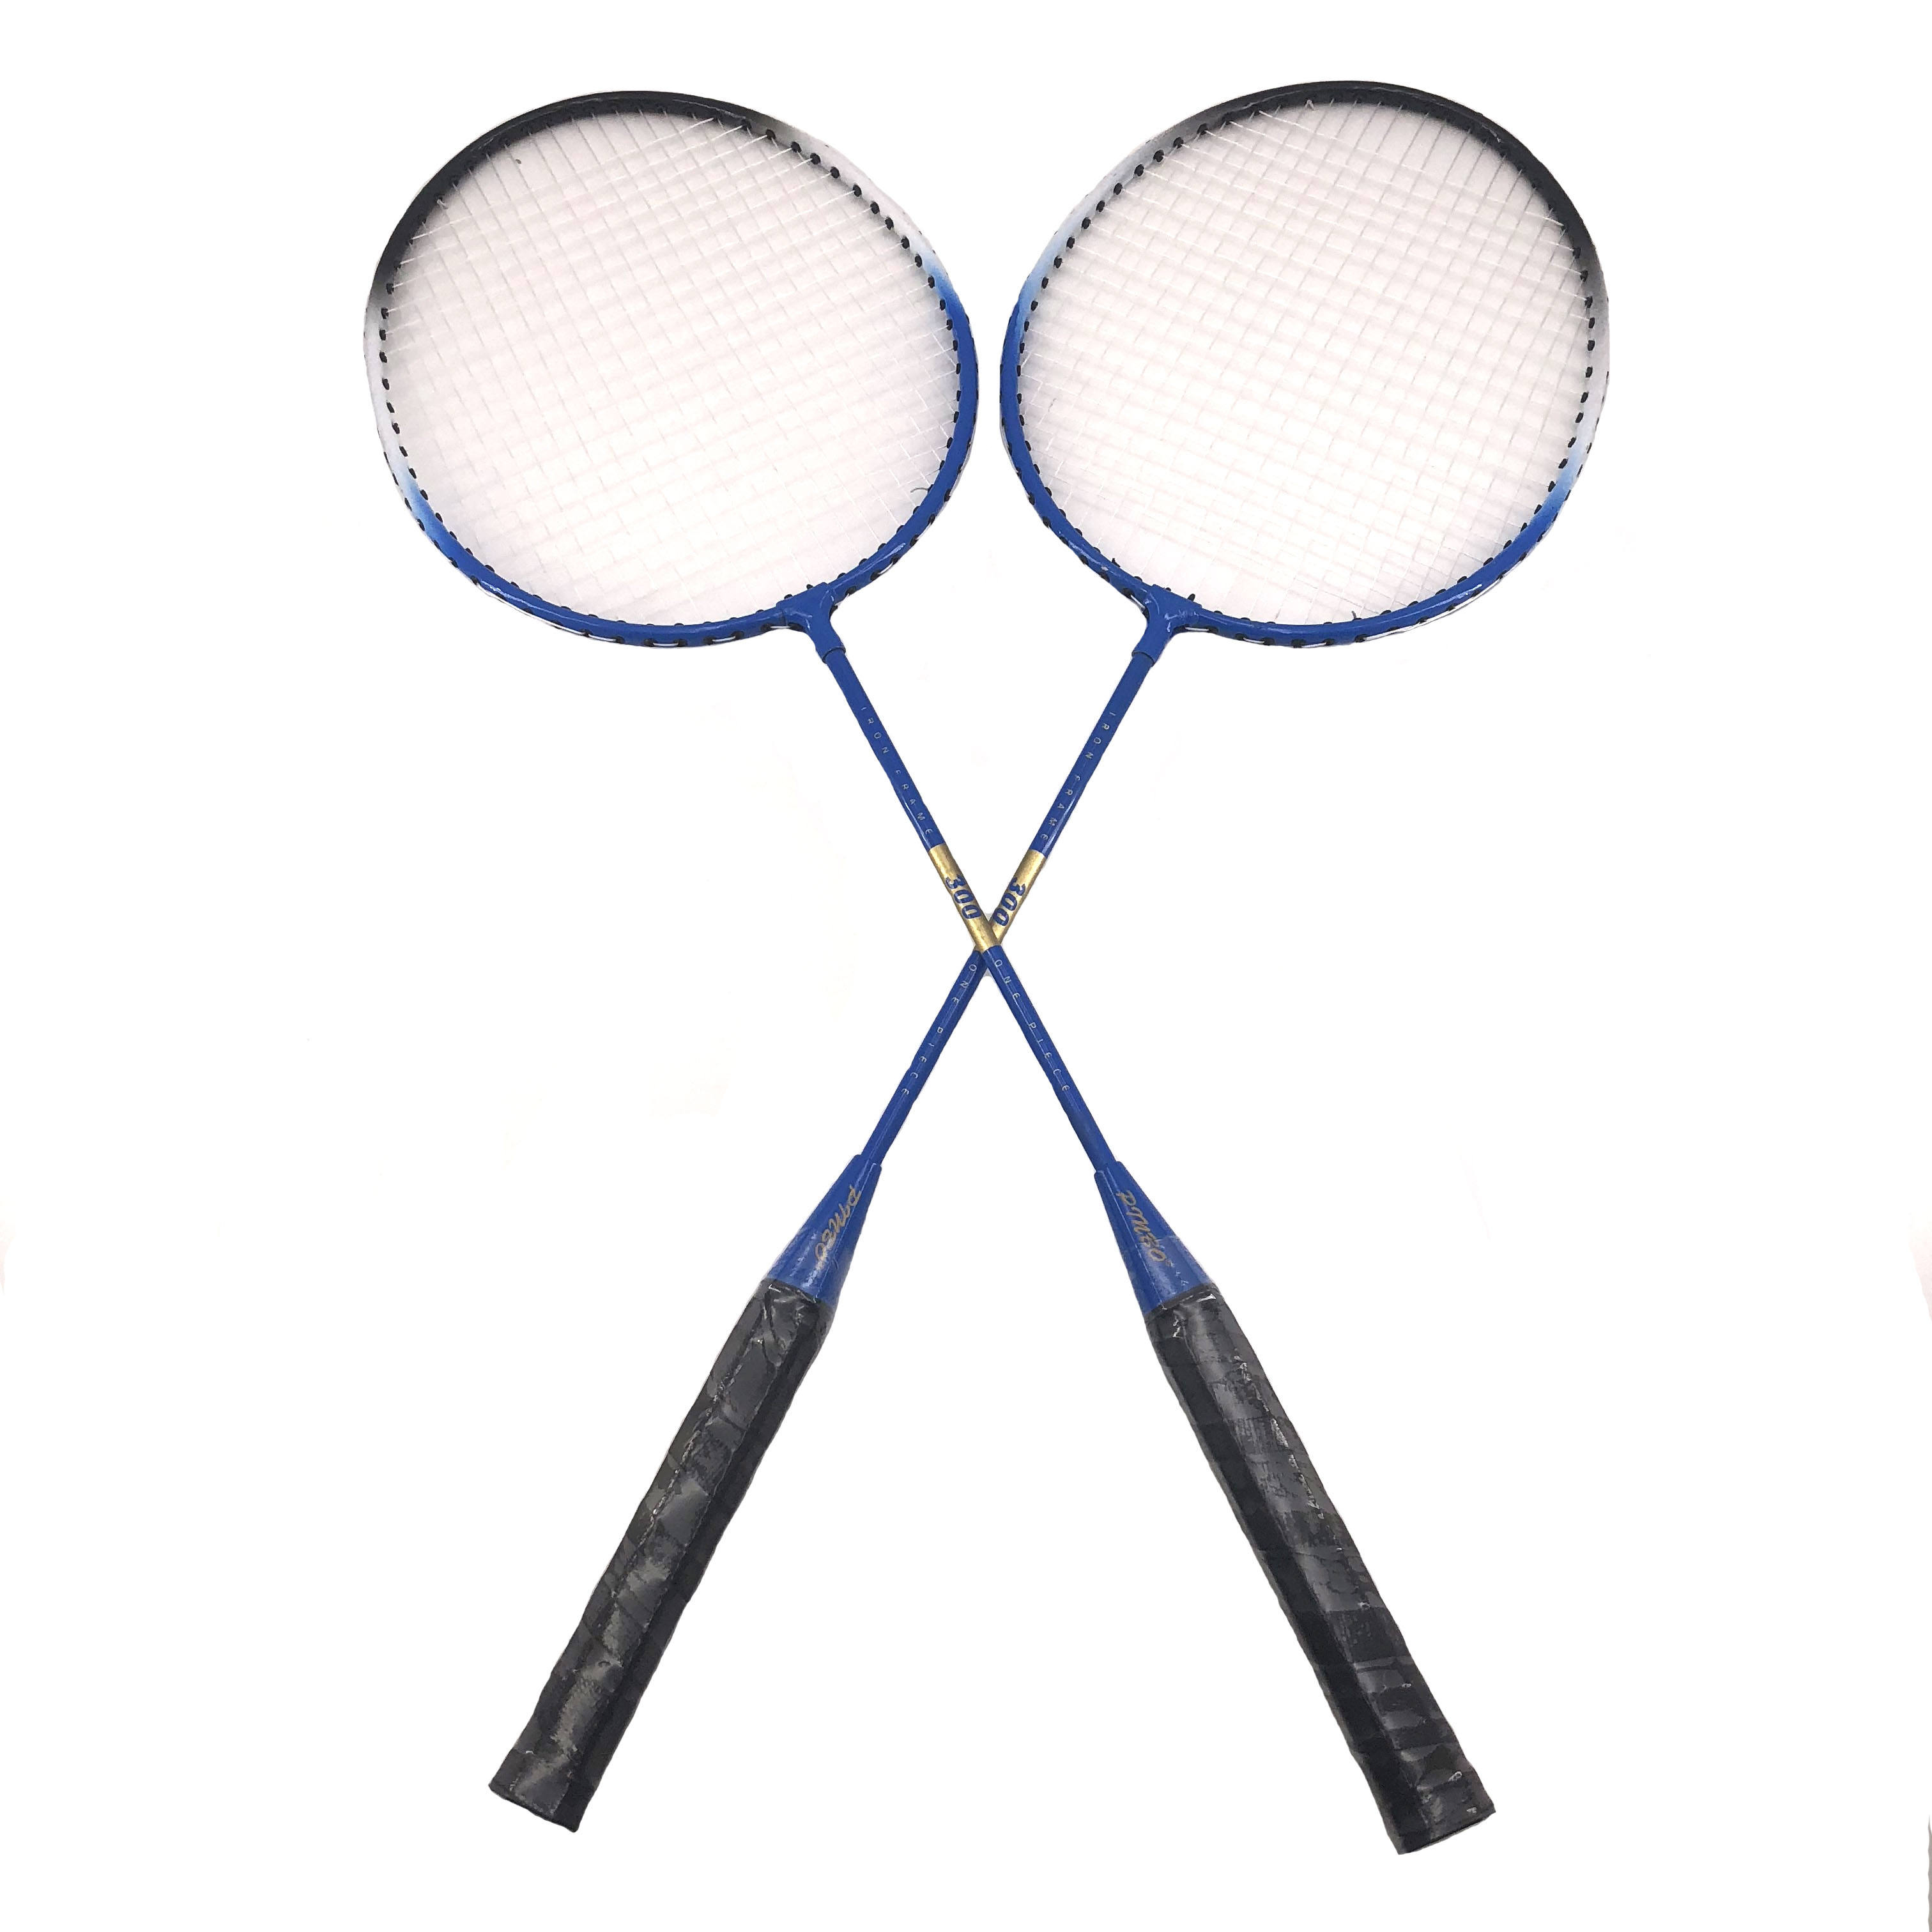 High quality low price cheap aluminum grip badminton racquets sports badminton rackets with shuttlecock